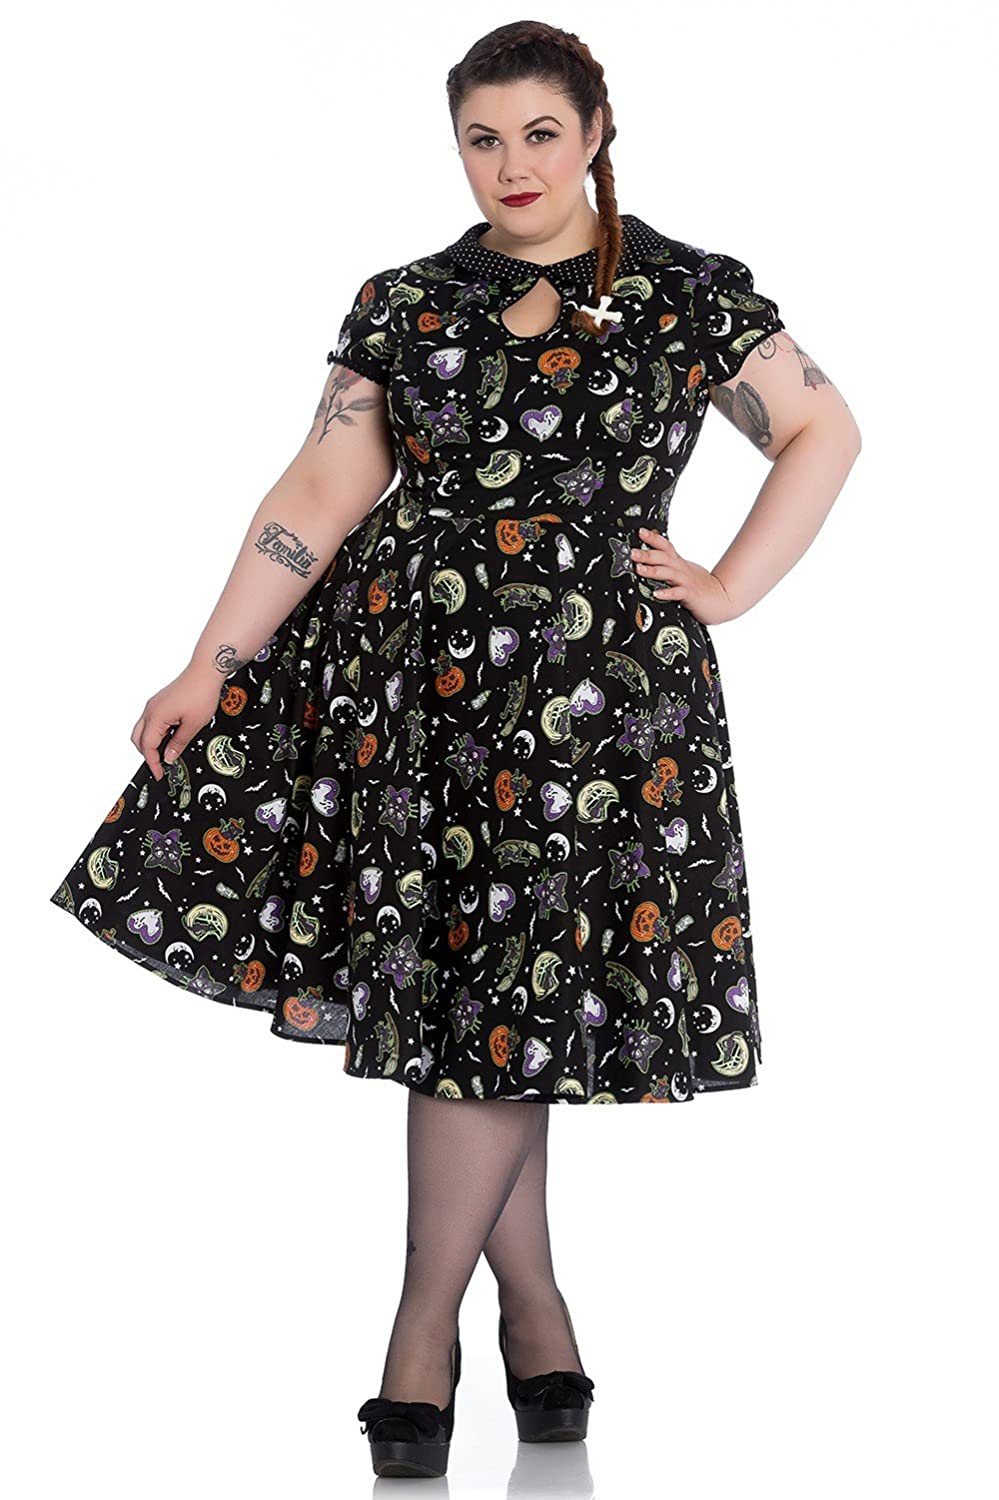 1950s Plus Size Dresses, Swing Dresses Hell Bunny Plus Size Gothic Halloween Black Cat Salem 50s Dress $80.99 AT vintagedancer.com